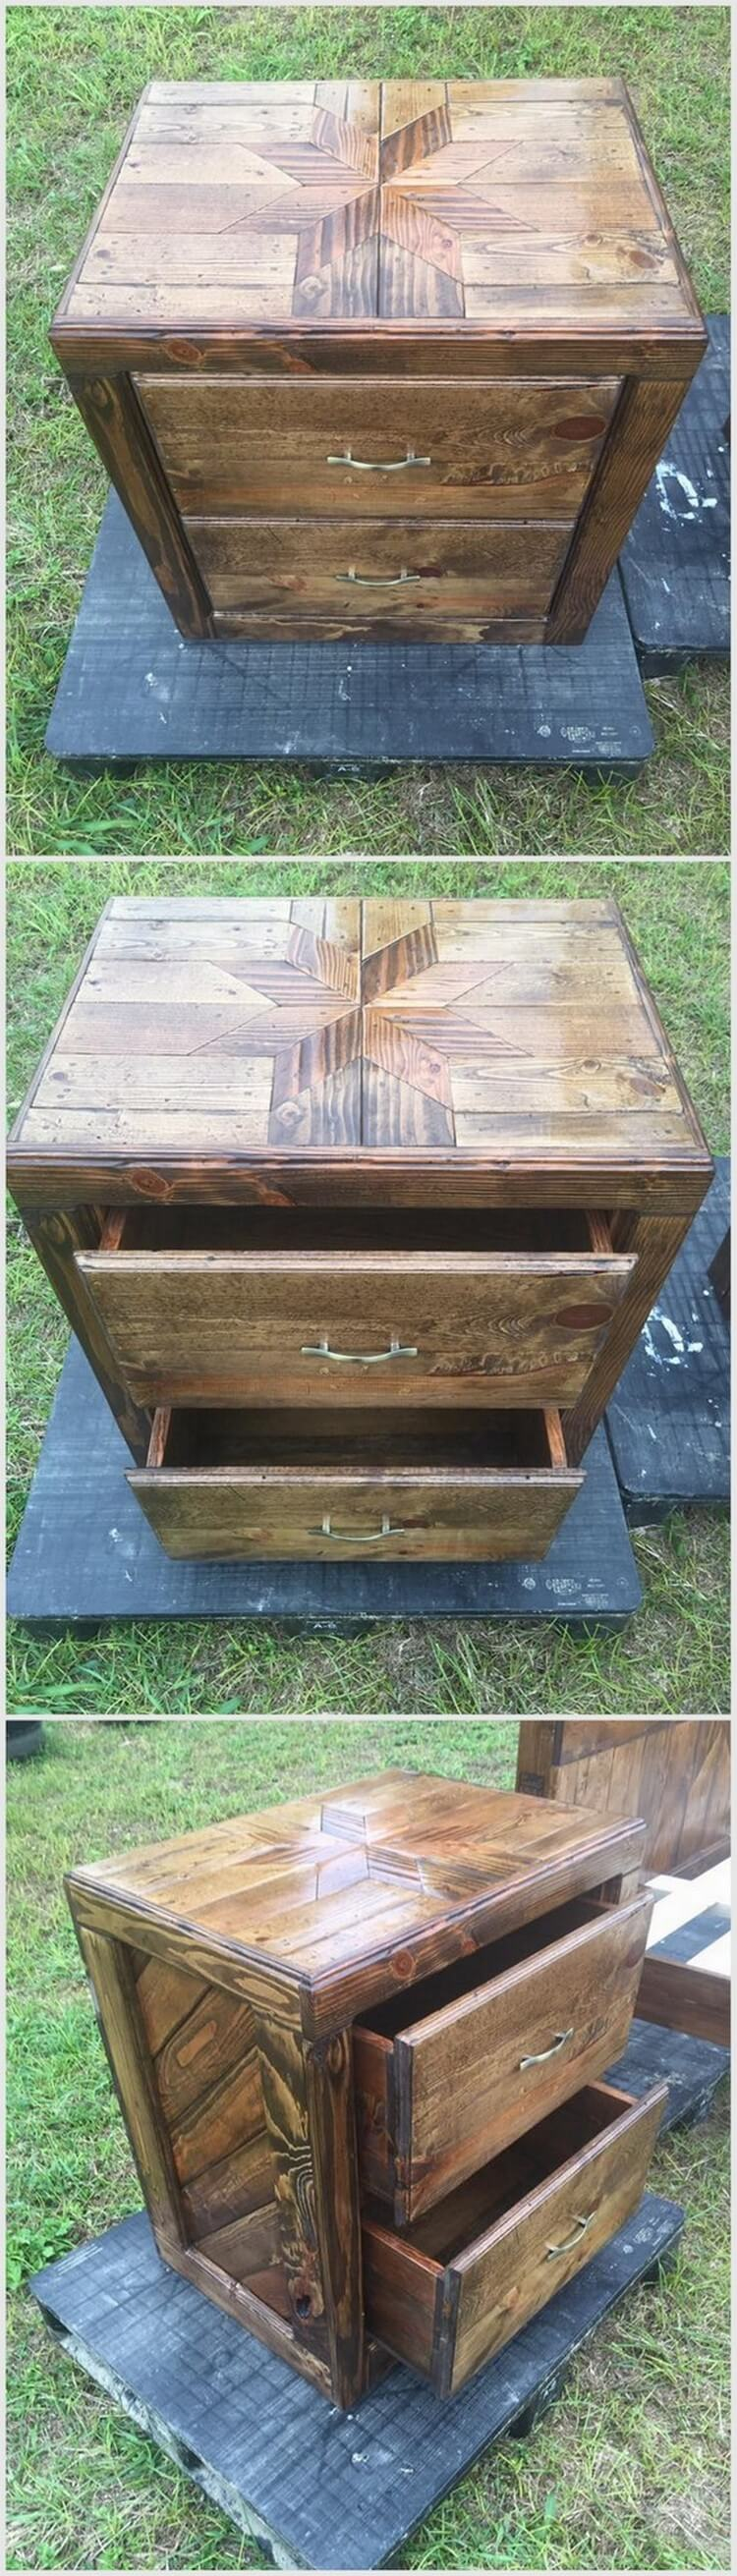 Wood Pallet Side Table with Two Drawers